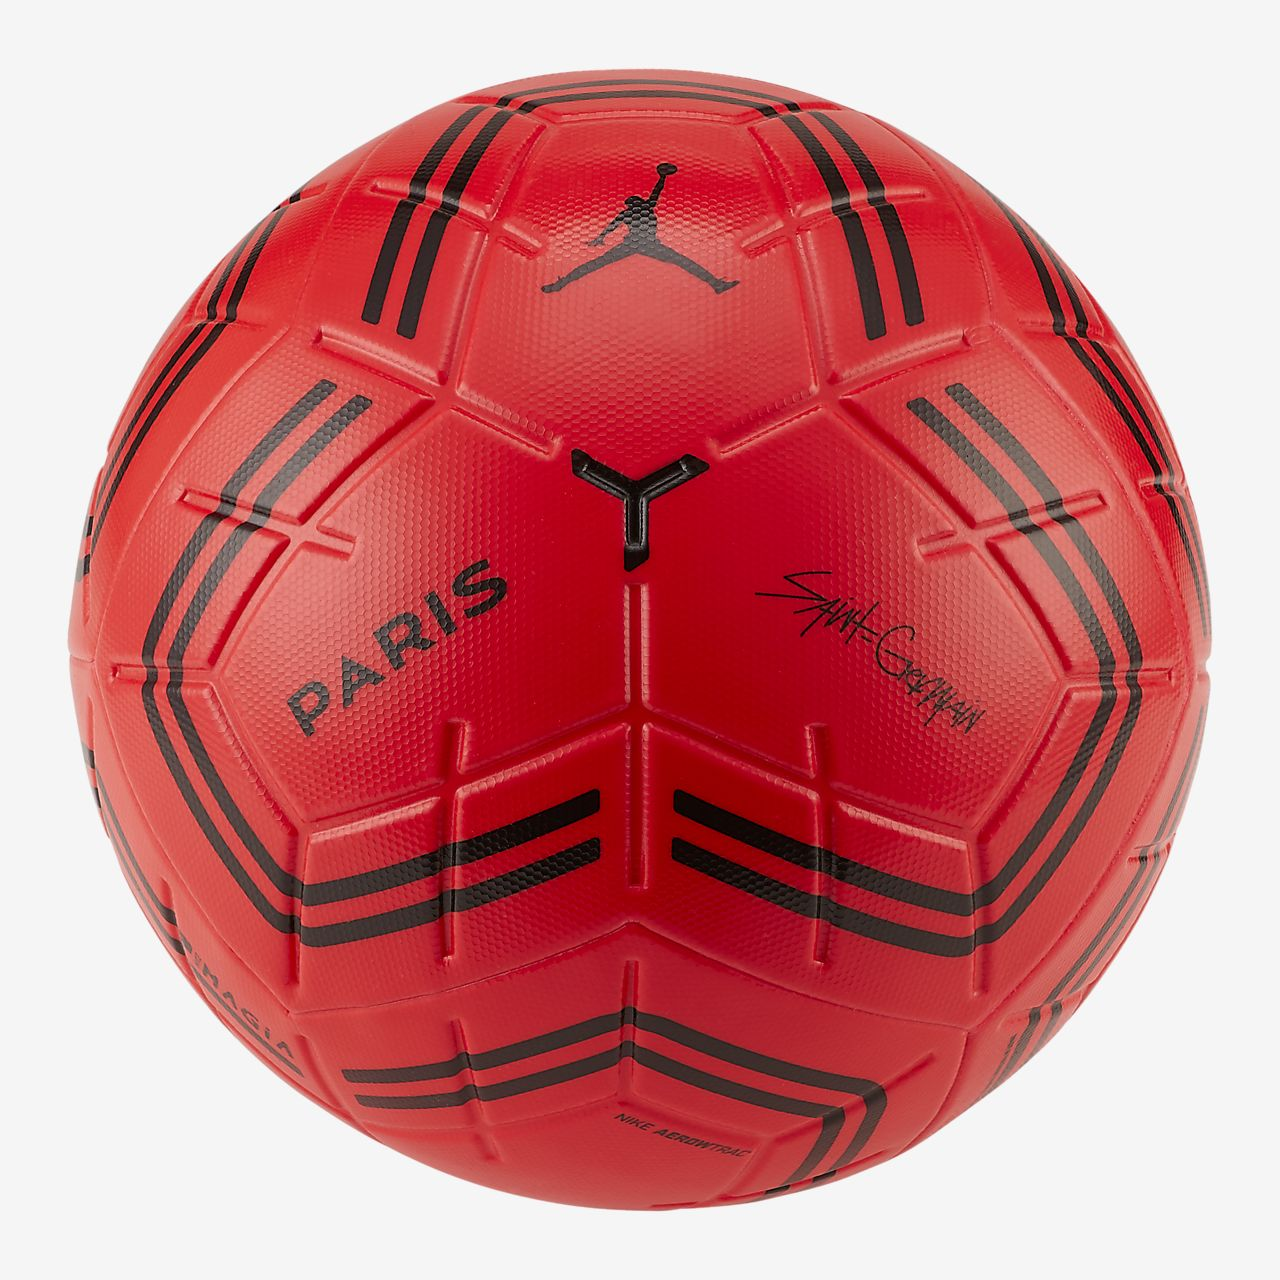 Ballon de football Paris Saint-Germain Magia